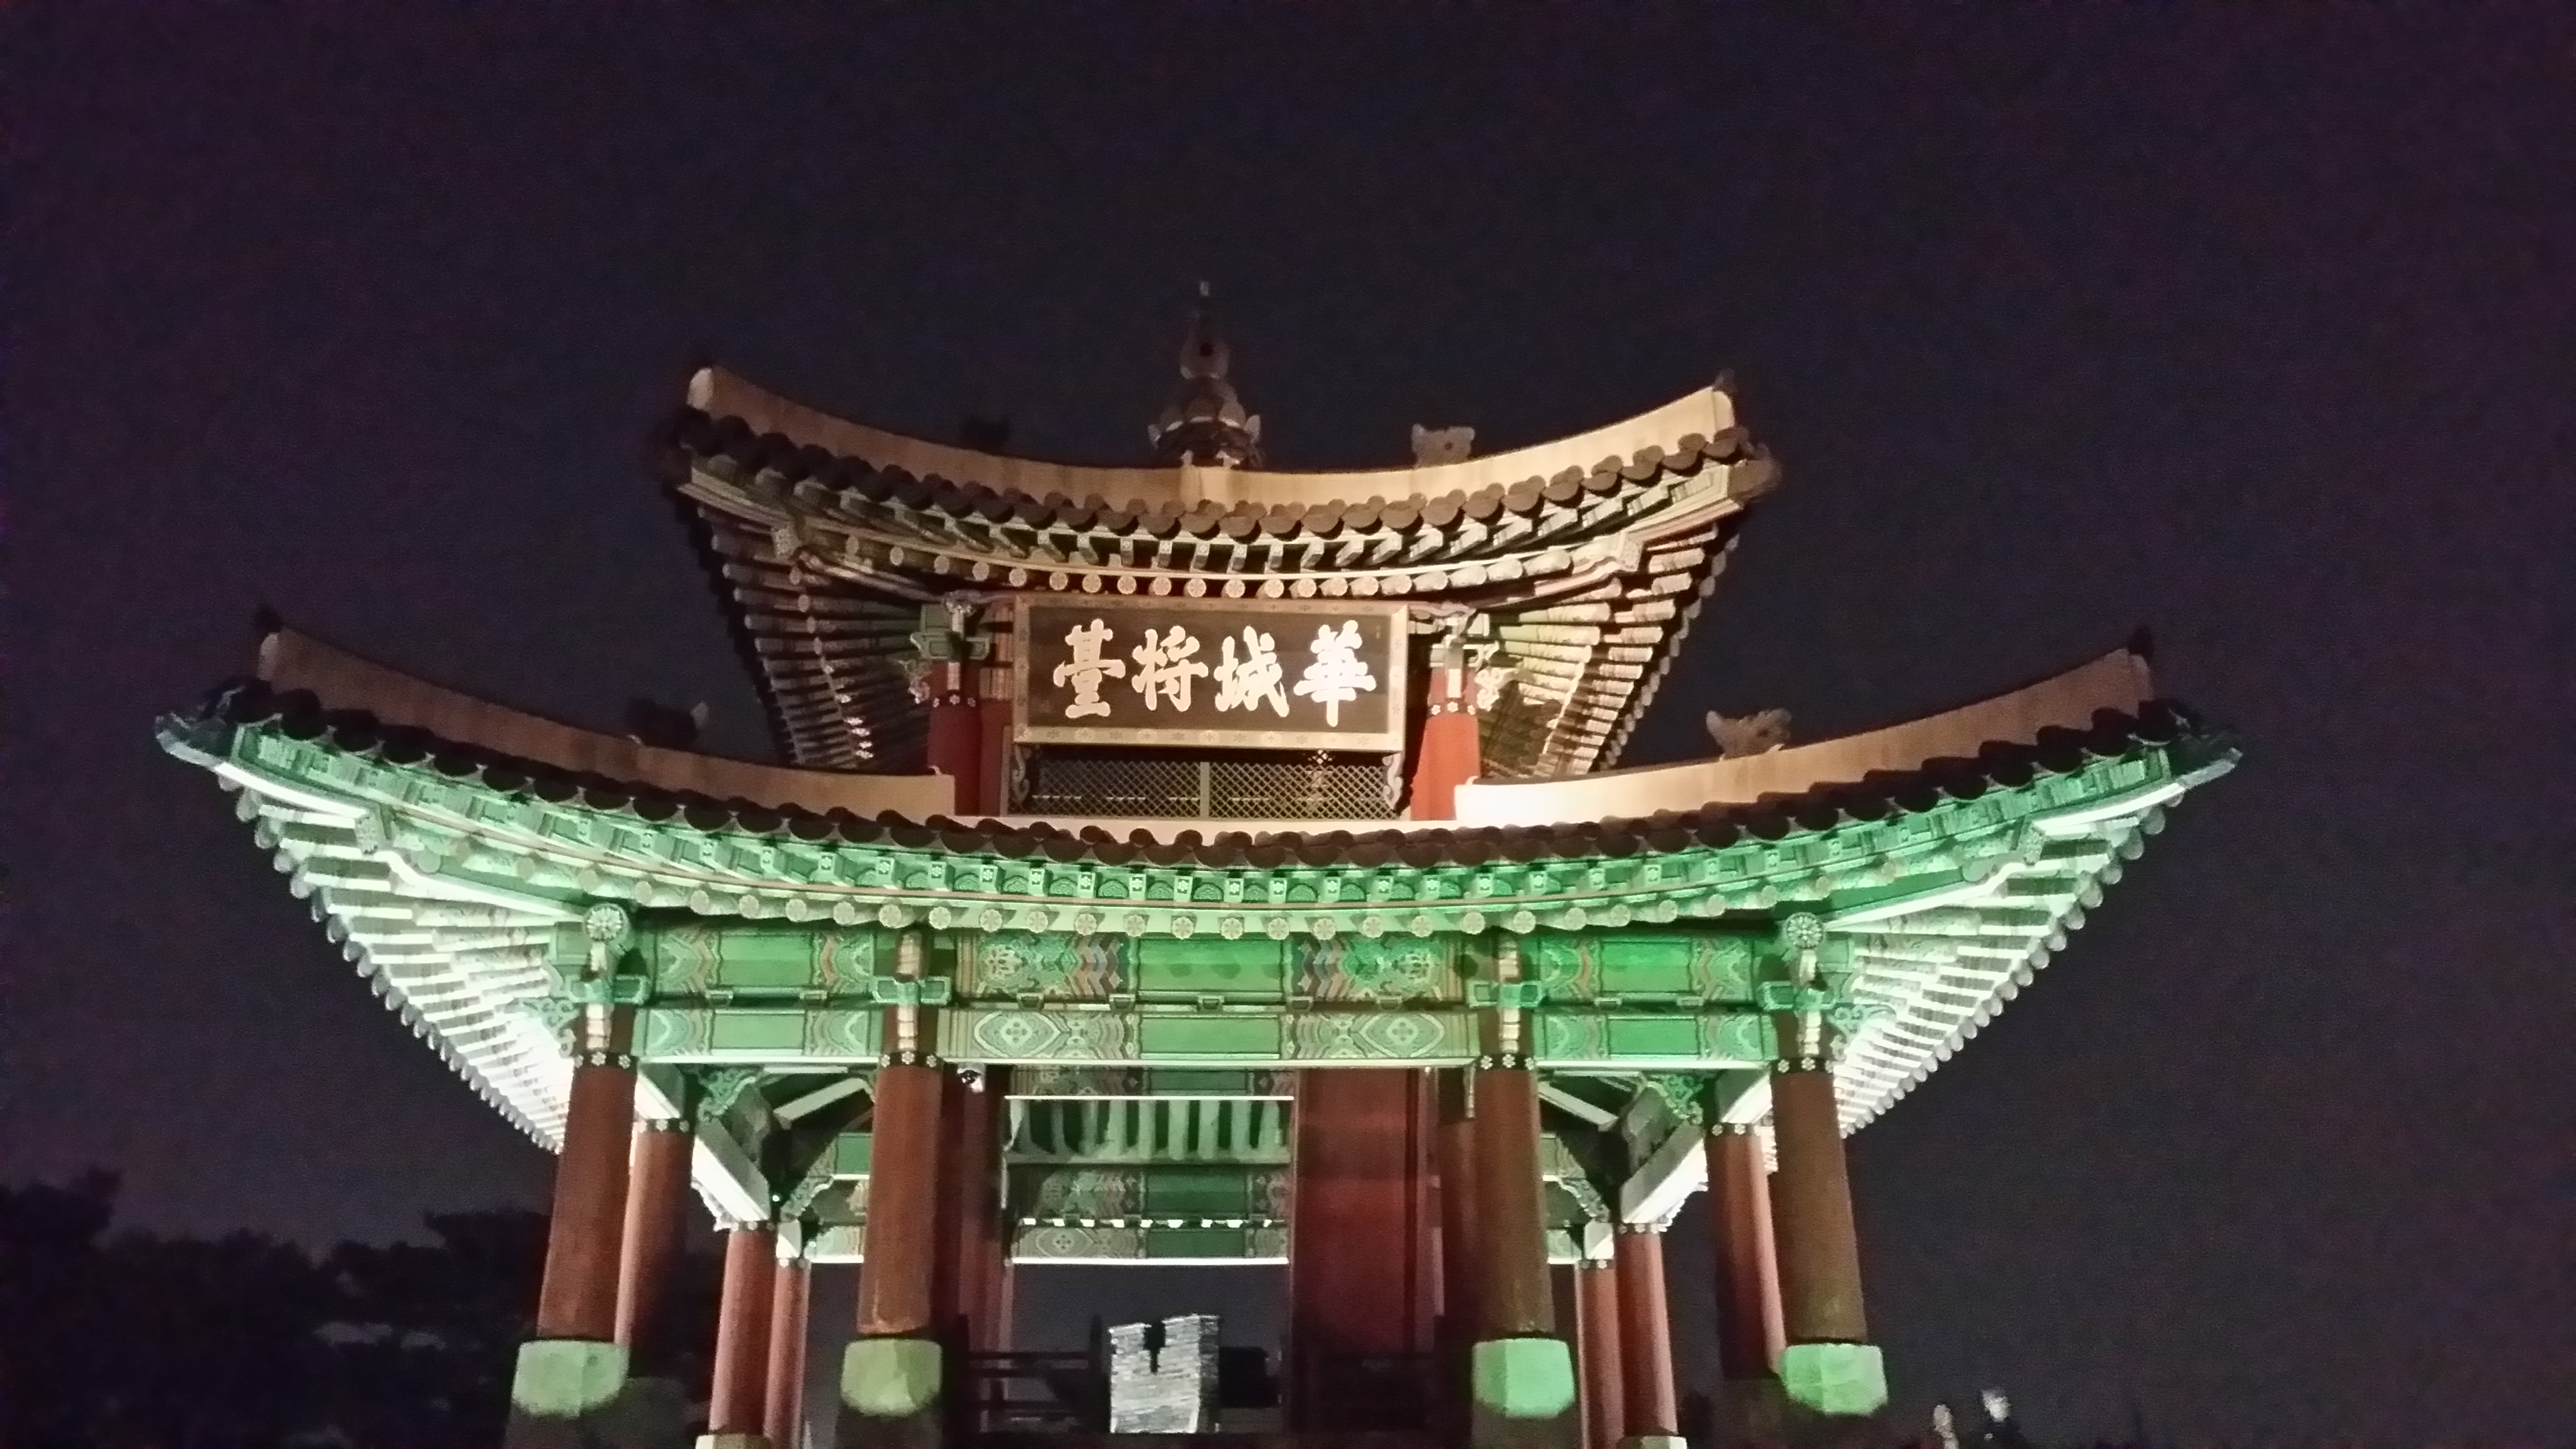 Brilliant Fortress Hwaseong Fortress - Republic of Korea (South Korea) Vidya Charan